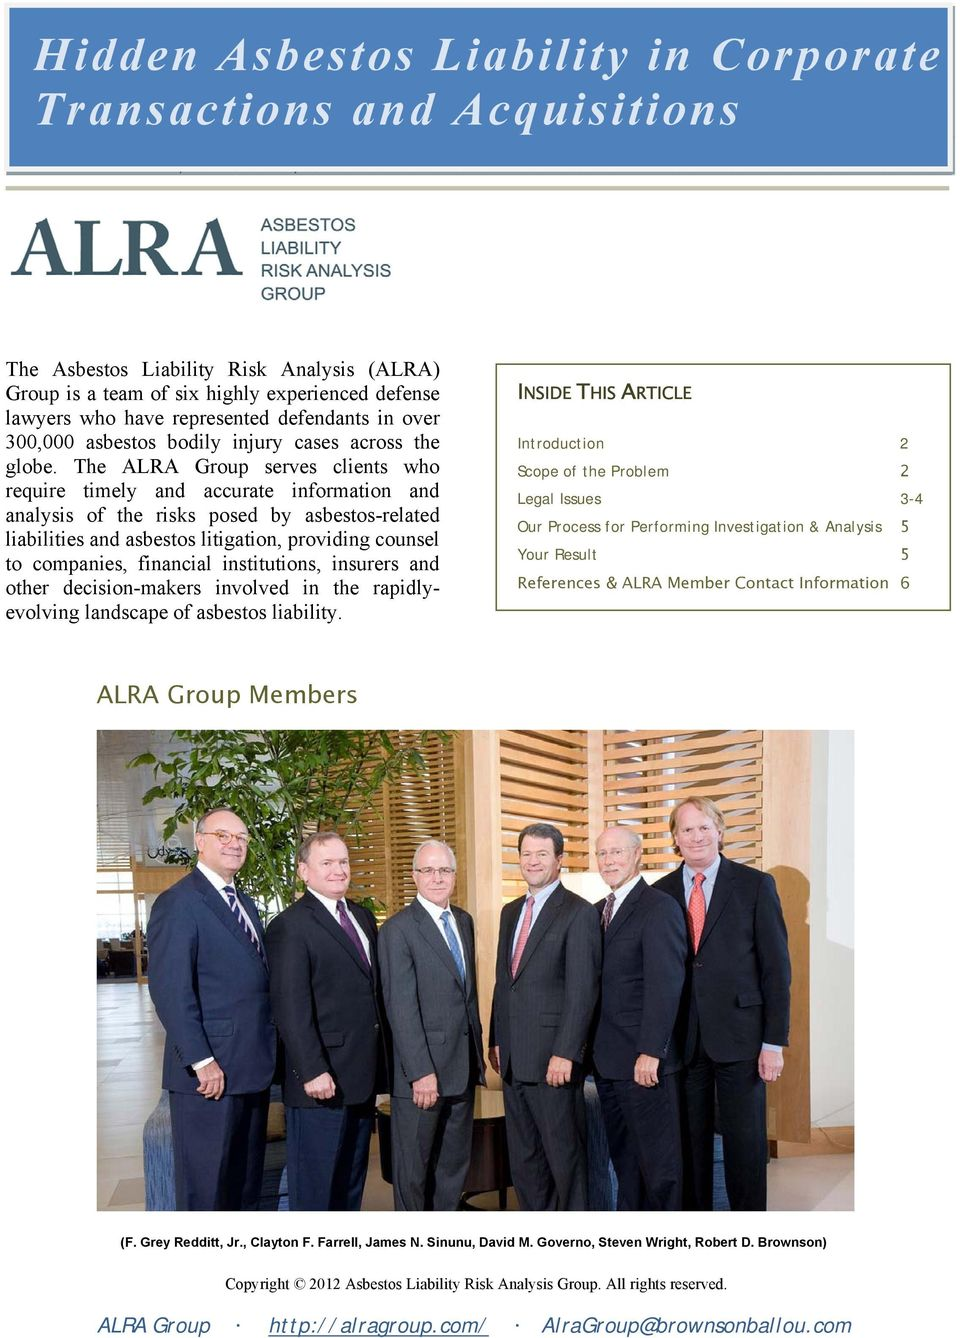 The ALRA Group serves clients who require timely and accurate information and analysis of the risks posed by asbestos-related liabilities and asbestos litigation, providing counsel to companies,